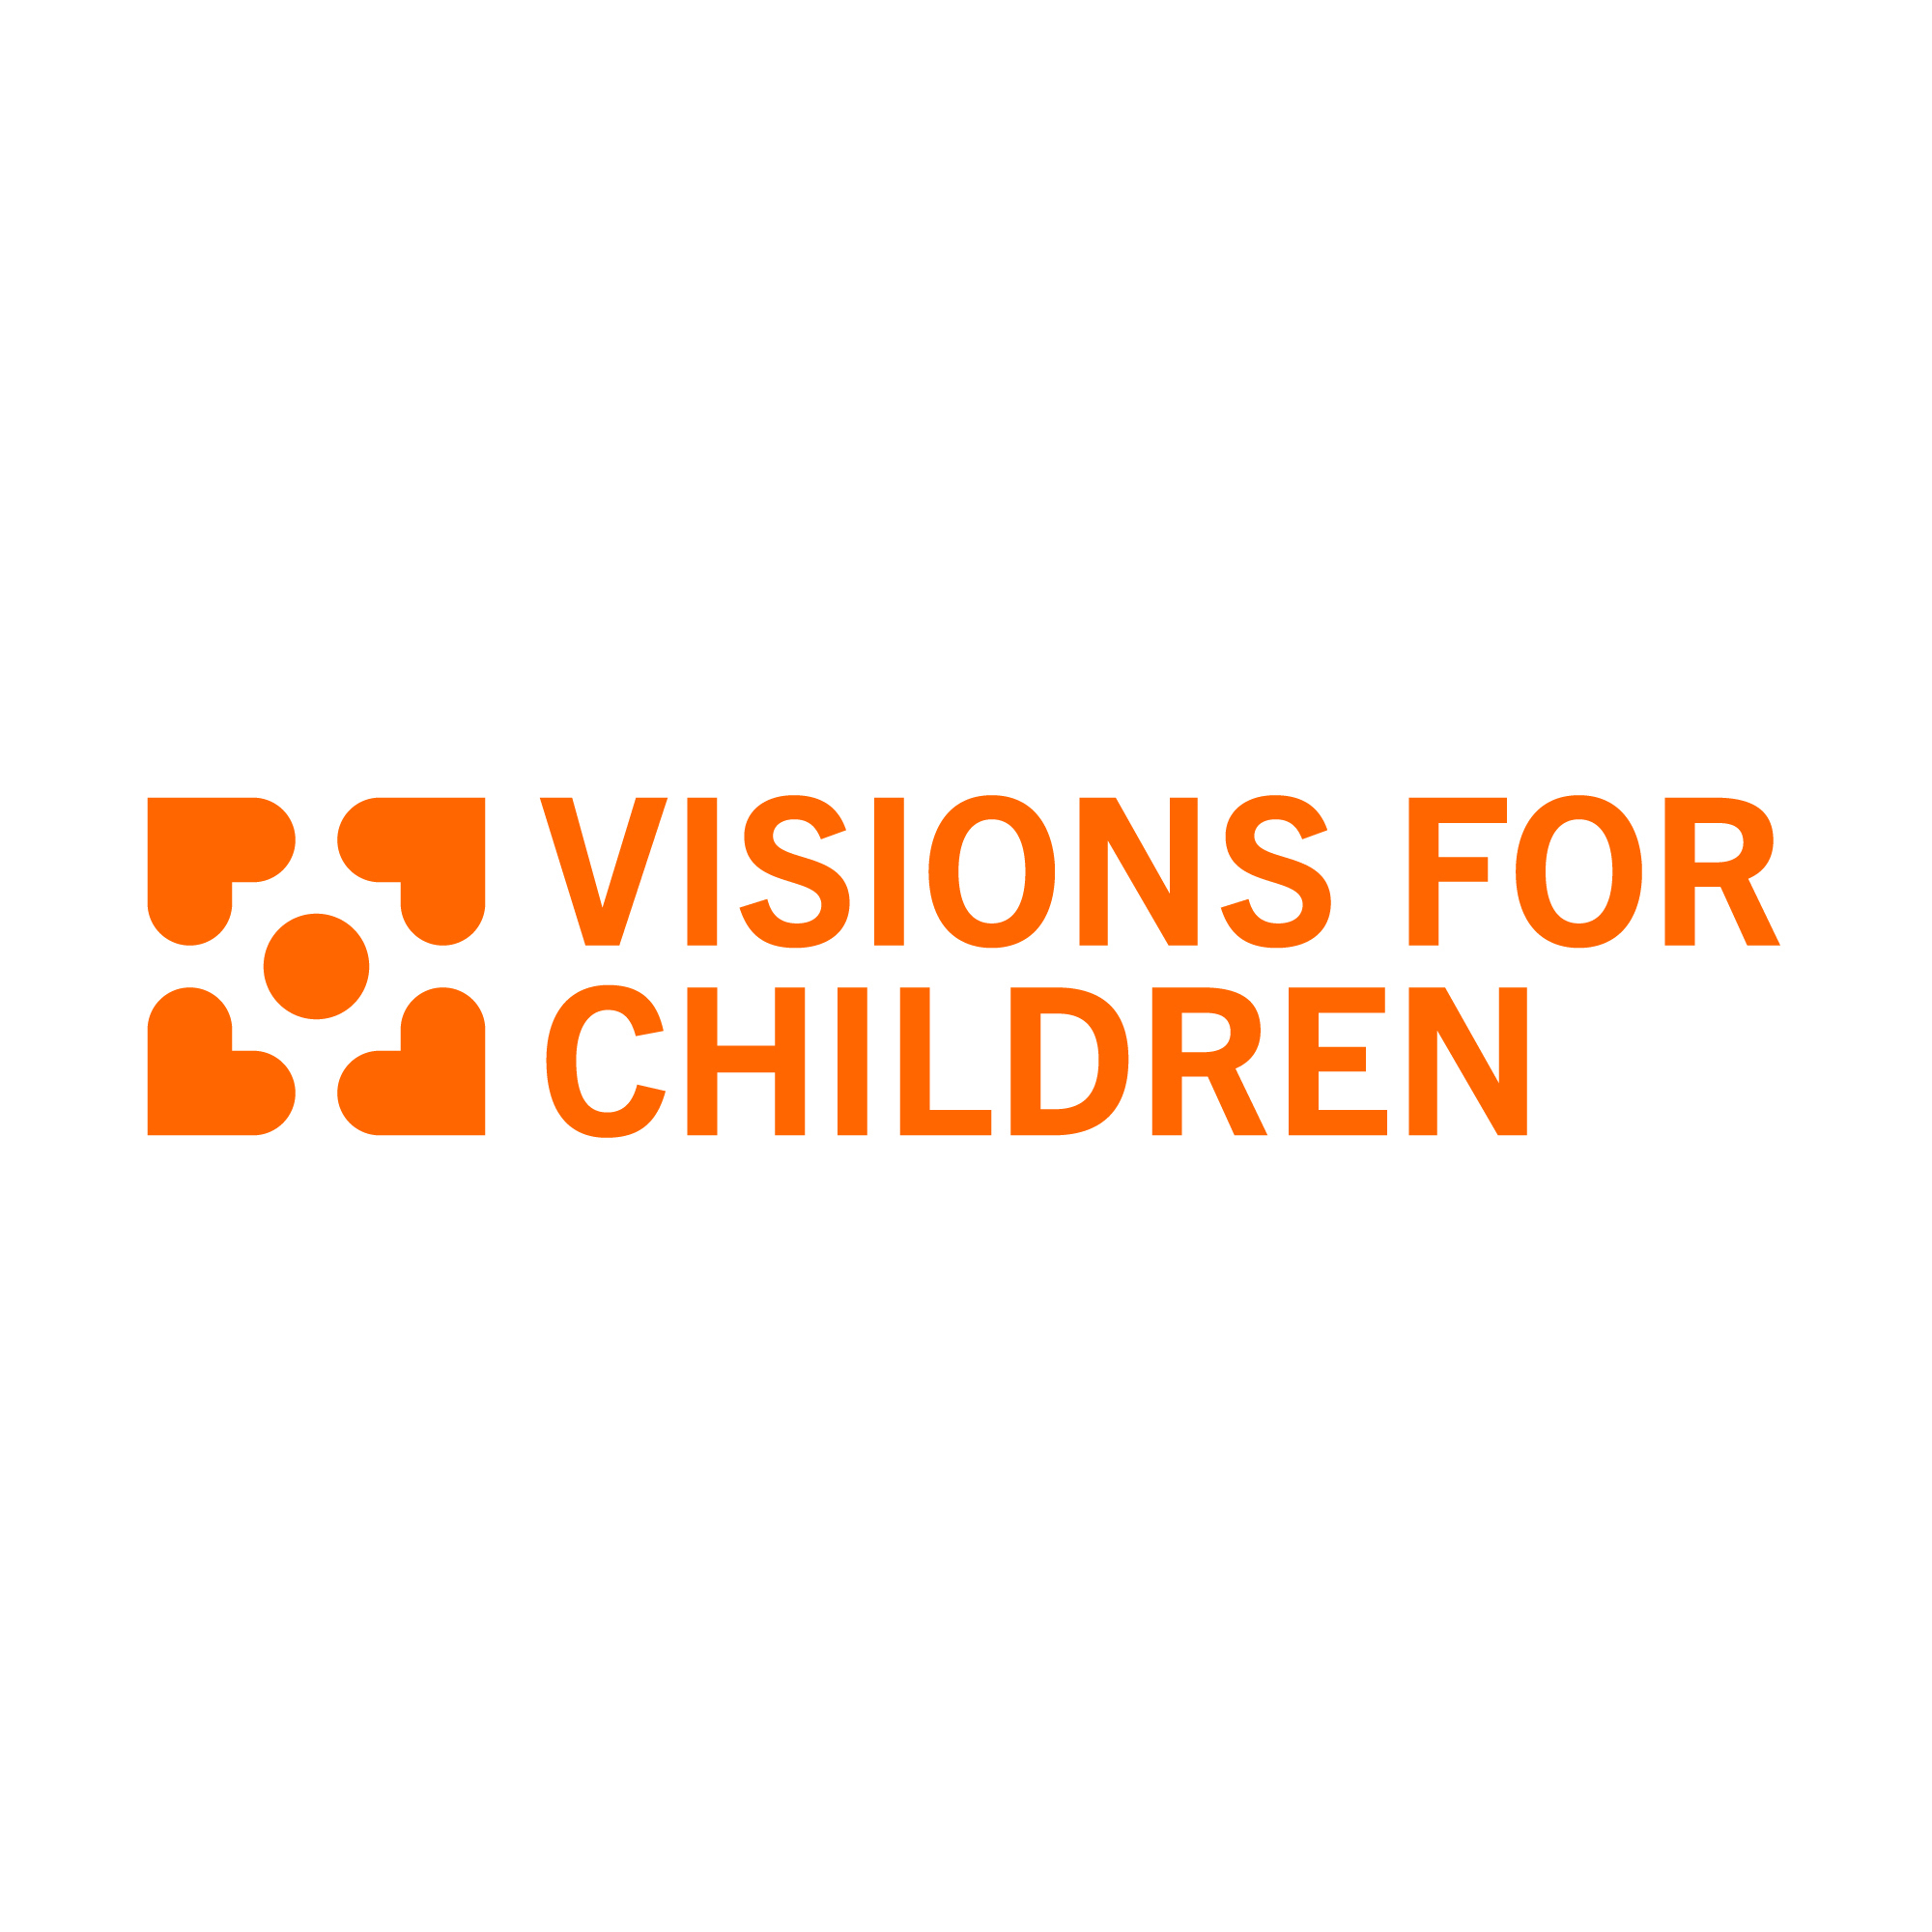 Visions for Children e.V Donate to our organisation betterplace.org